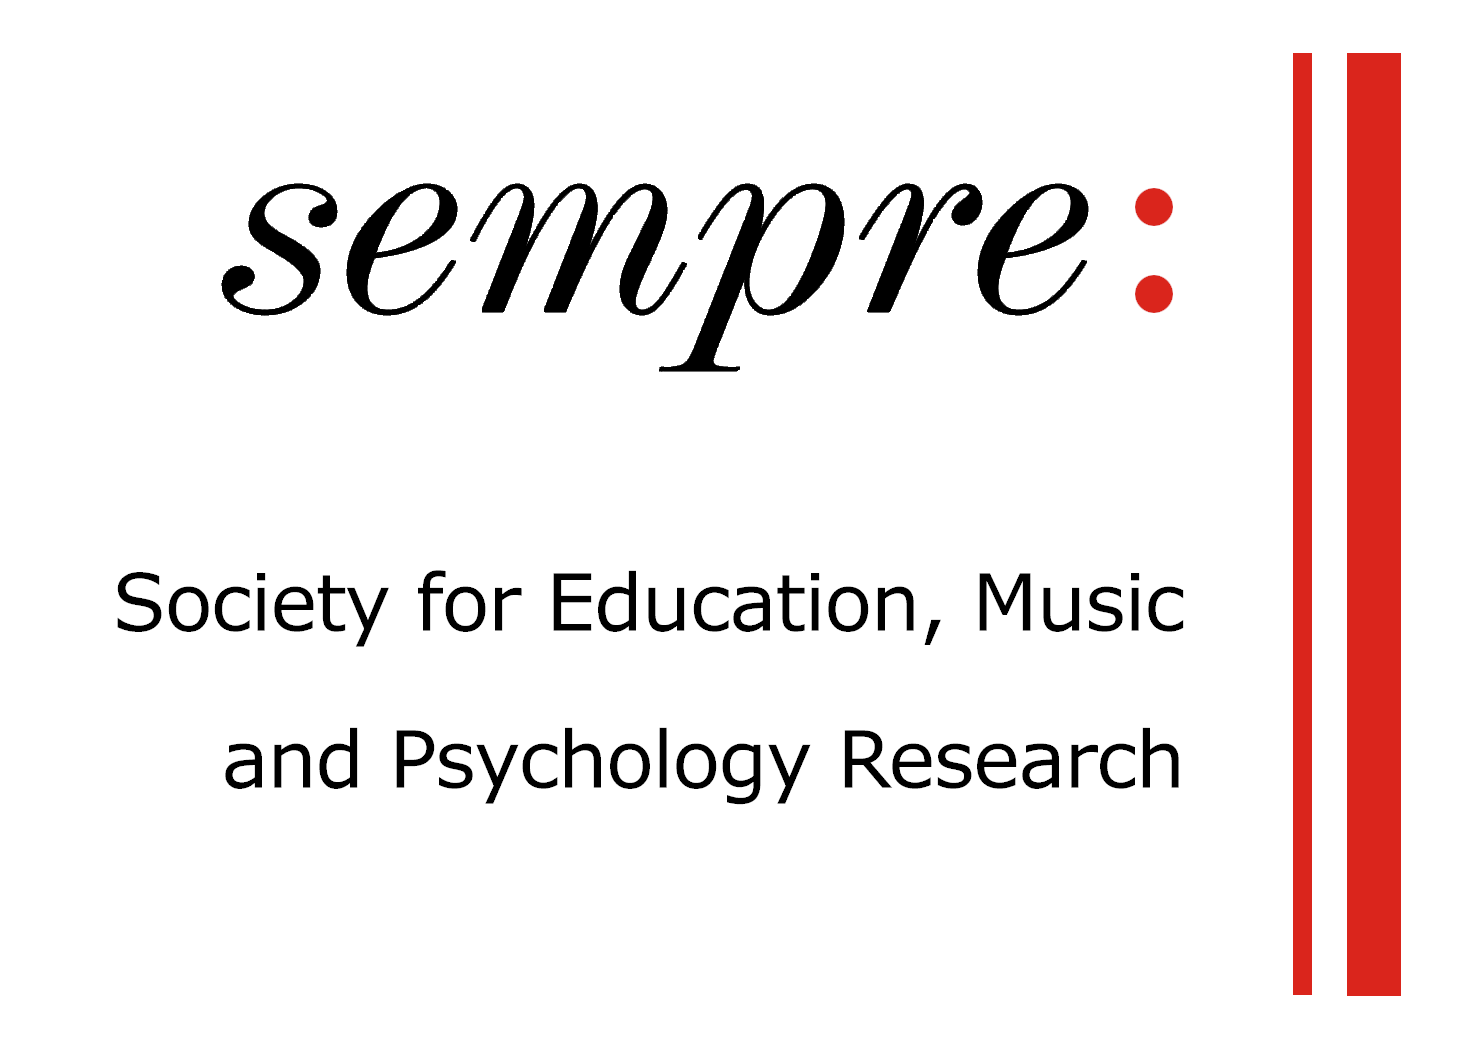 Society for Education, Music and Psychology Research Conference